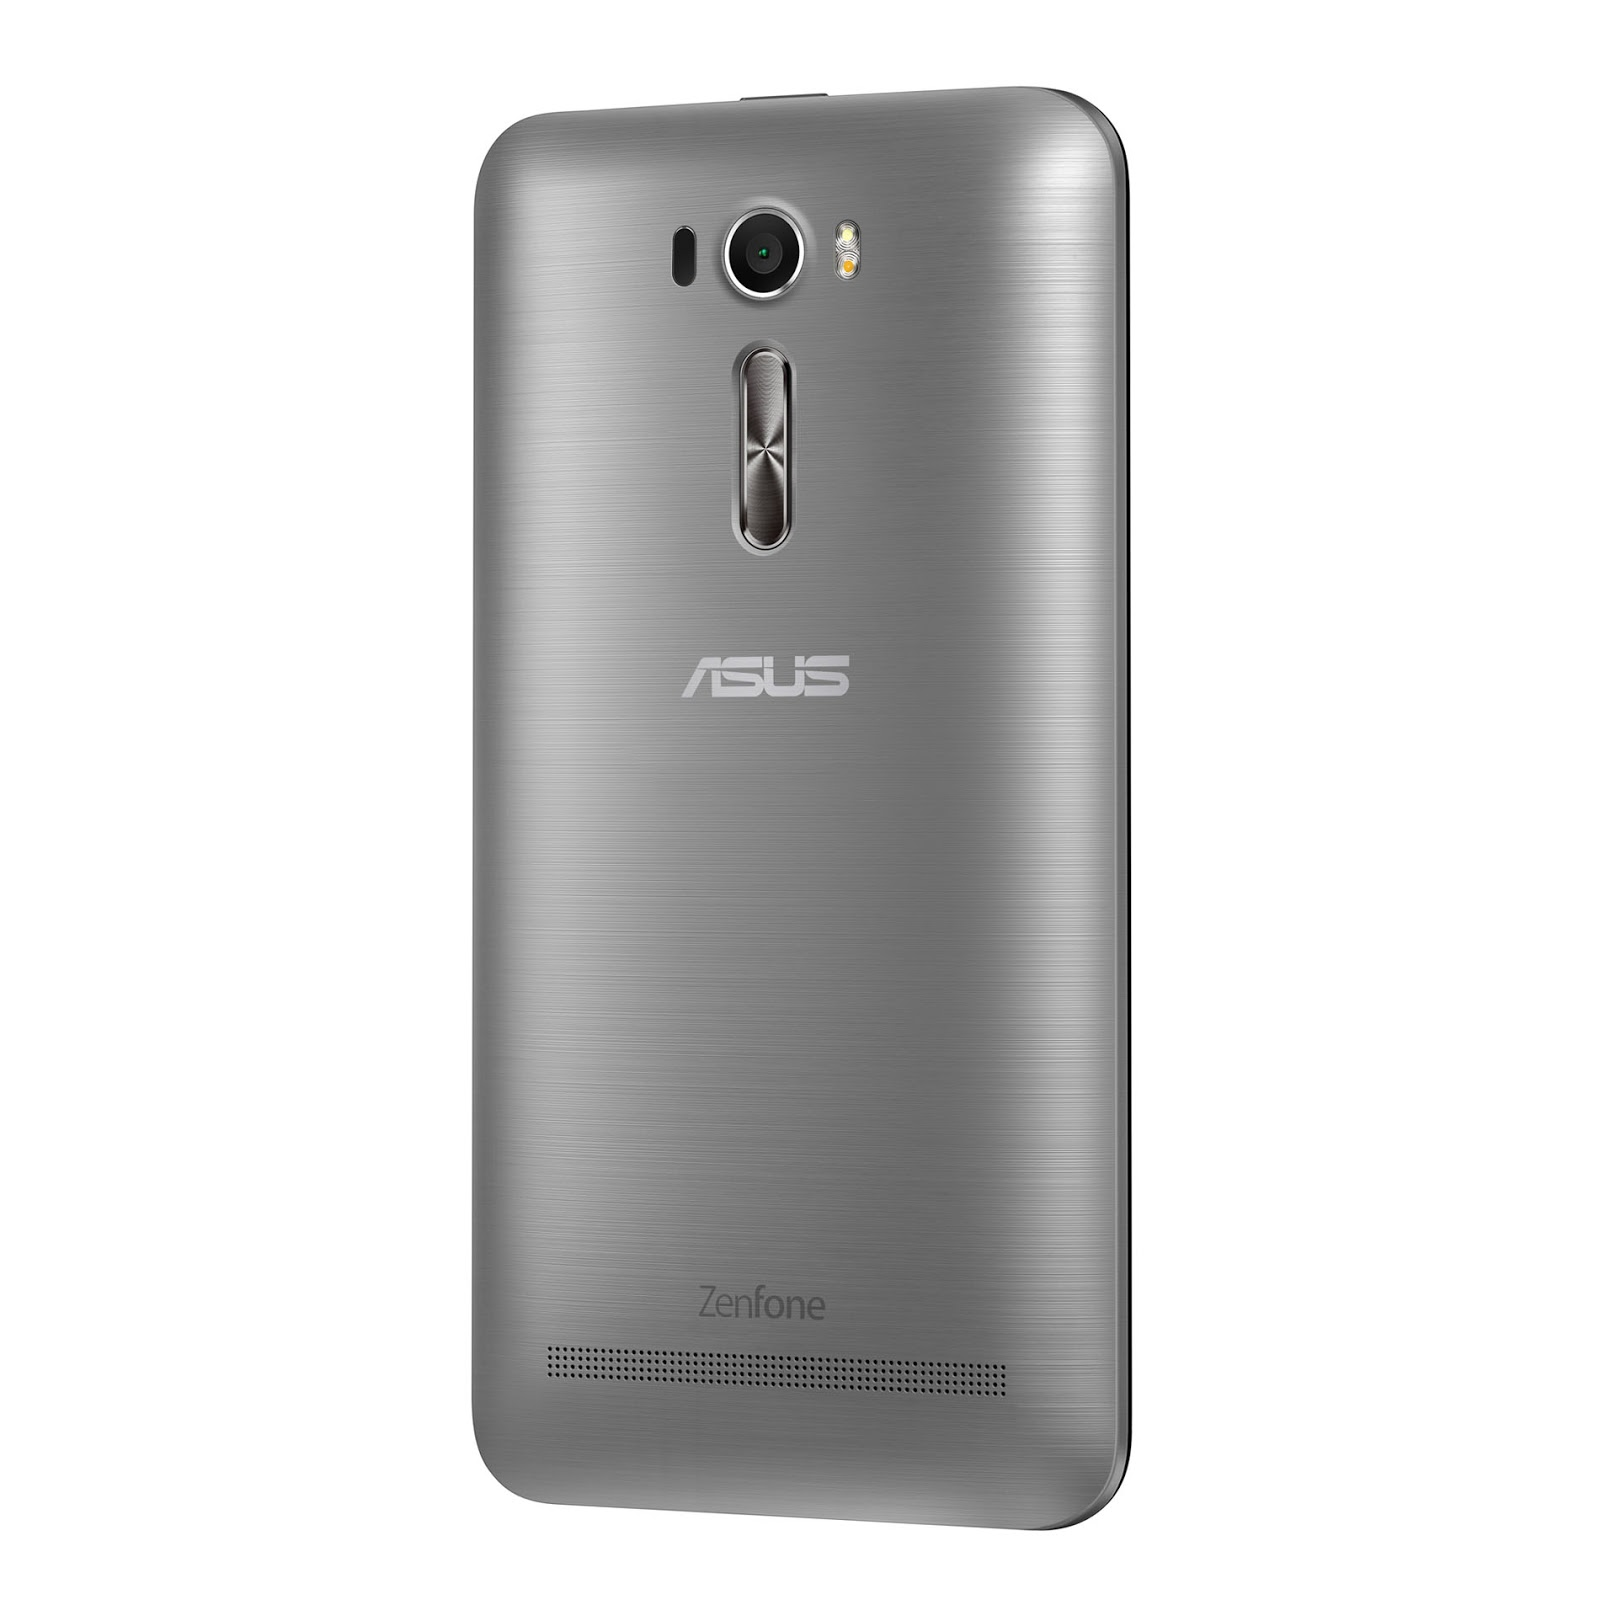 Asus Zenfone 2 Laser 6 Ze601kl Launched In India At Rs 17999 Case